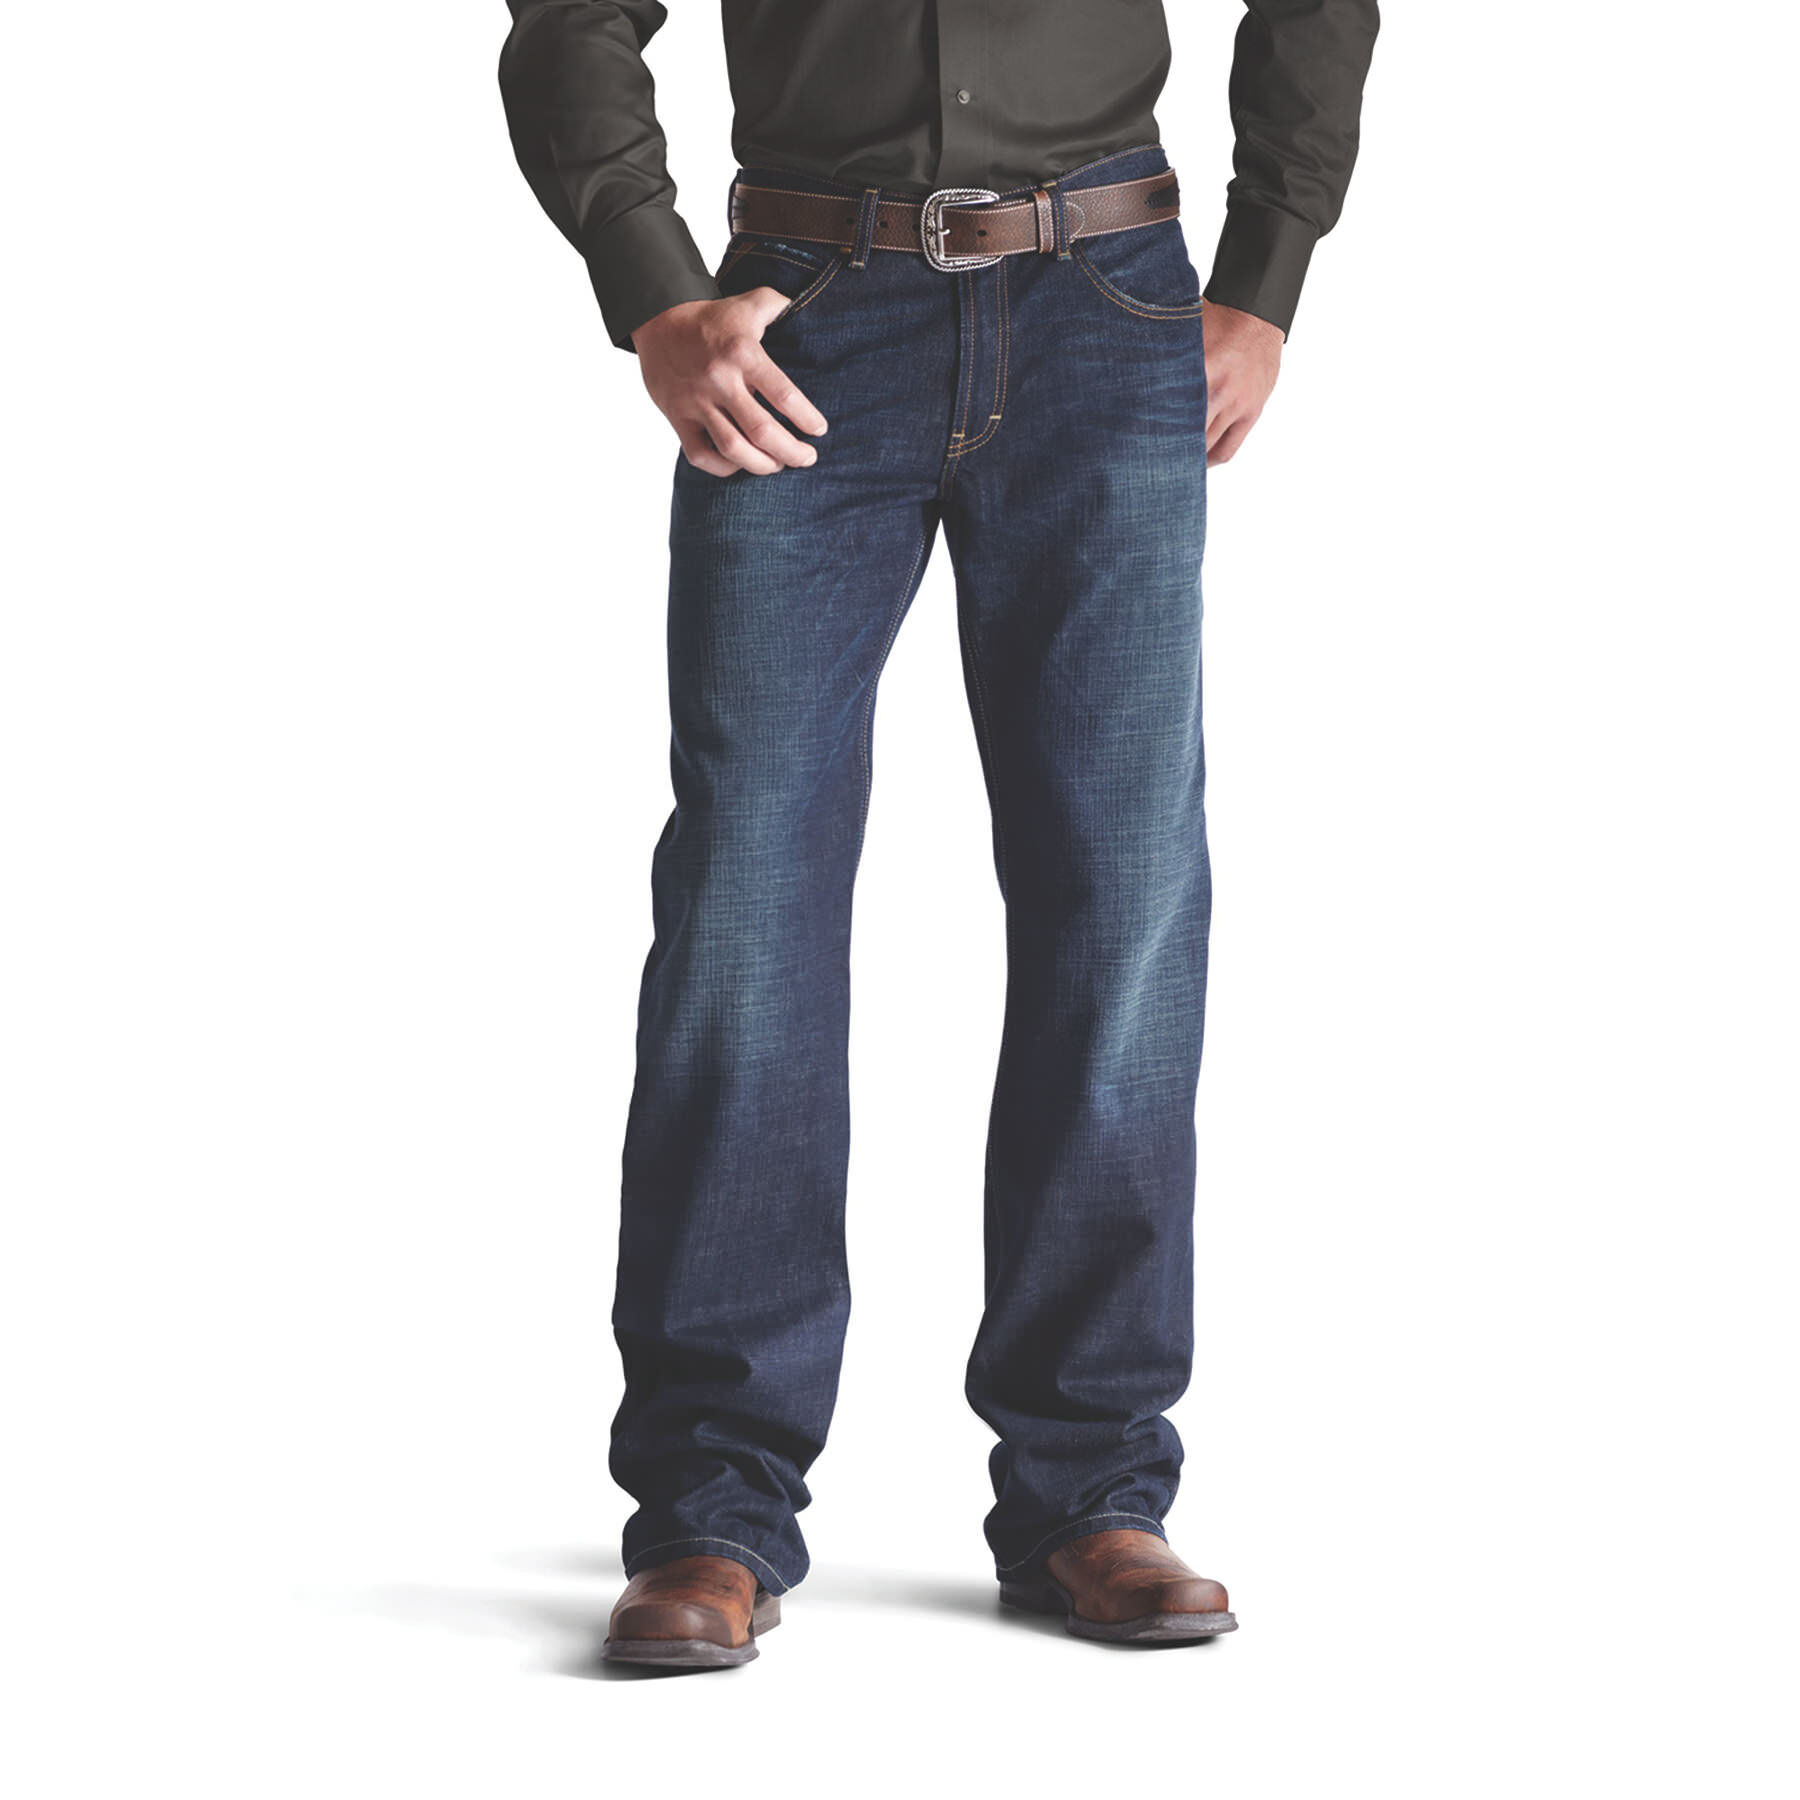 Mens loose bootcut jeans uk